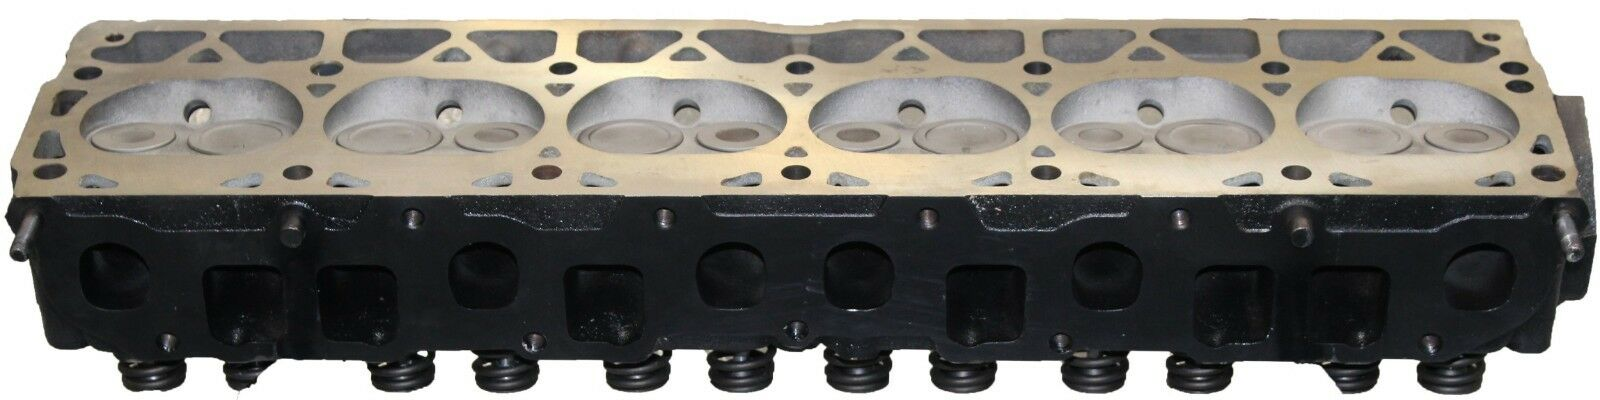 Used Jeep Comanche Cylinder Heads and Parts for Sale